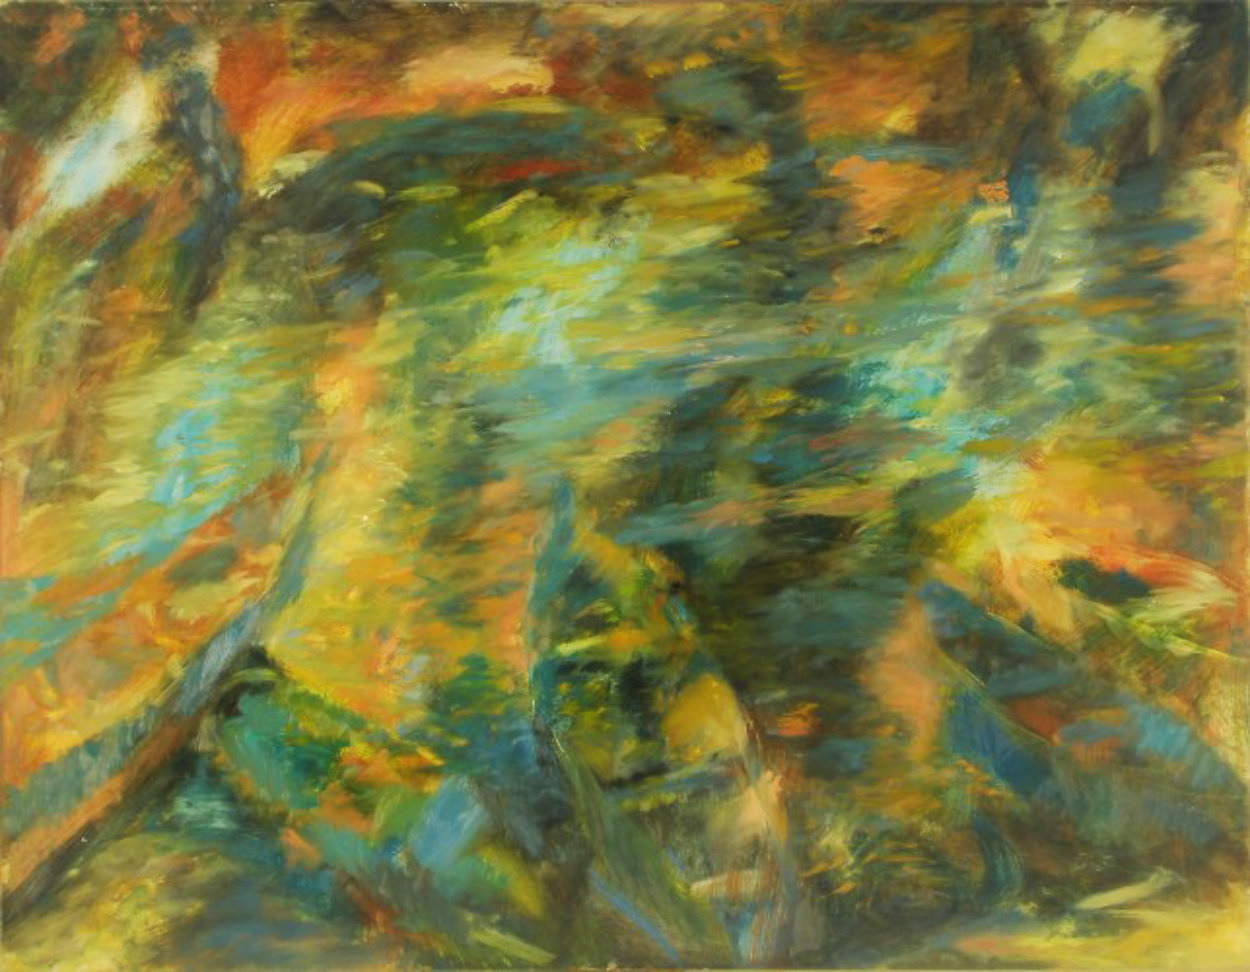 River 1999 27x36 Original Painting by Robert Nizamov